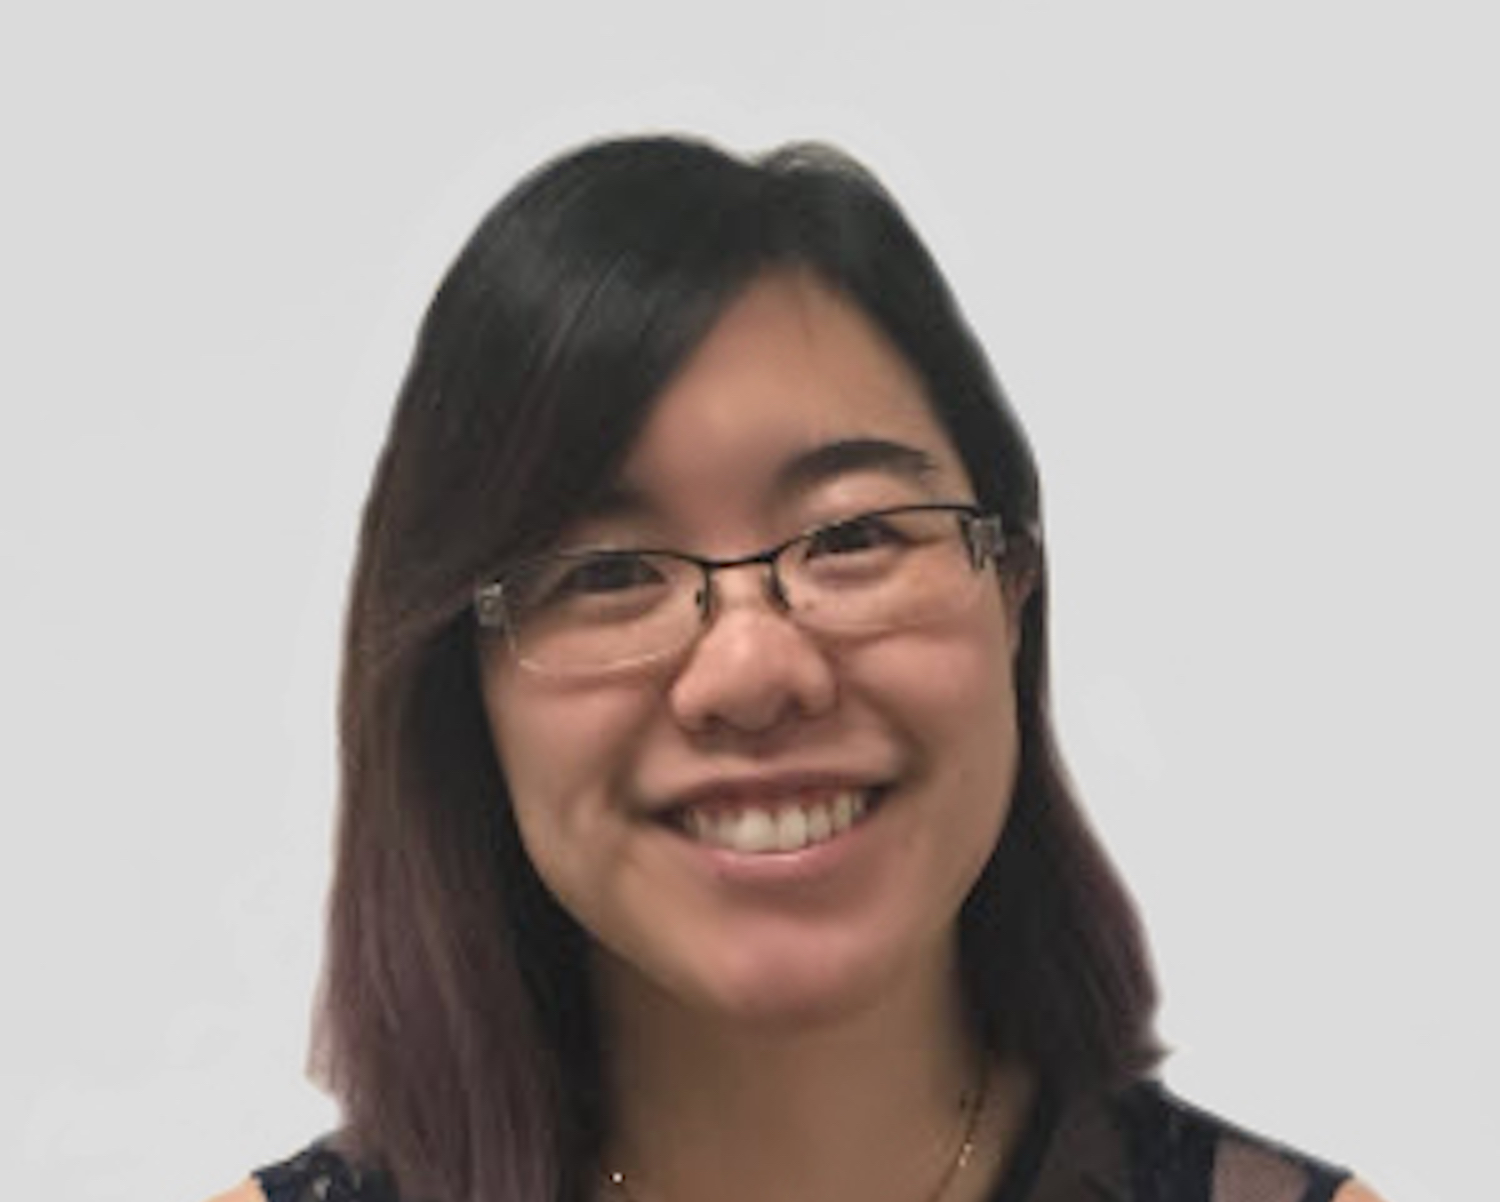 Dr. Samantha Yeh of the Animal Medical Center in New York City